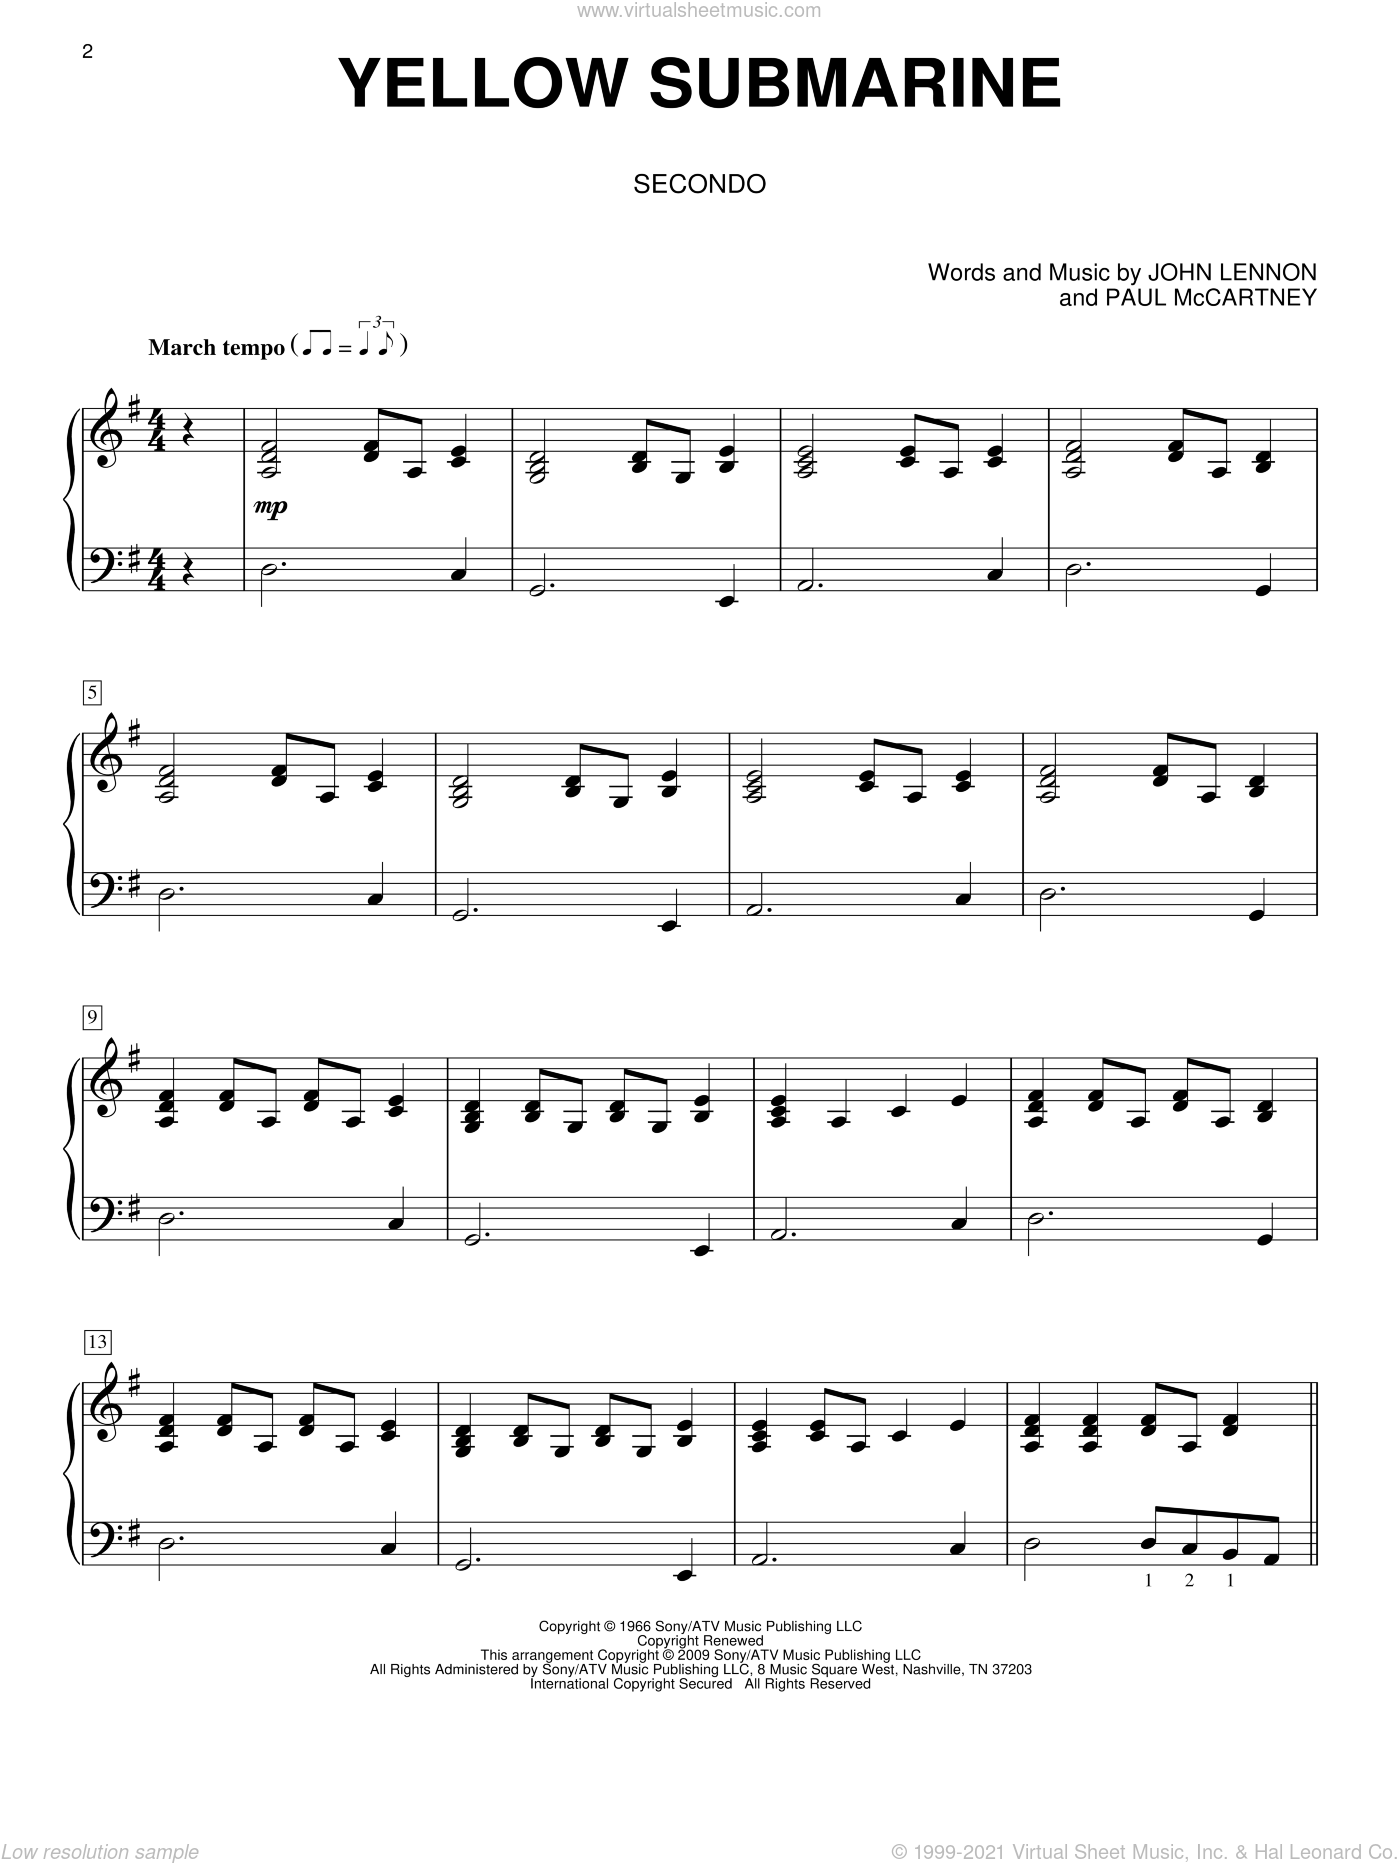 Yellow Submarine sheet music for piano four hands by The Beatles, John Lennon and Paul McCartney, intermediate skill level